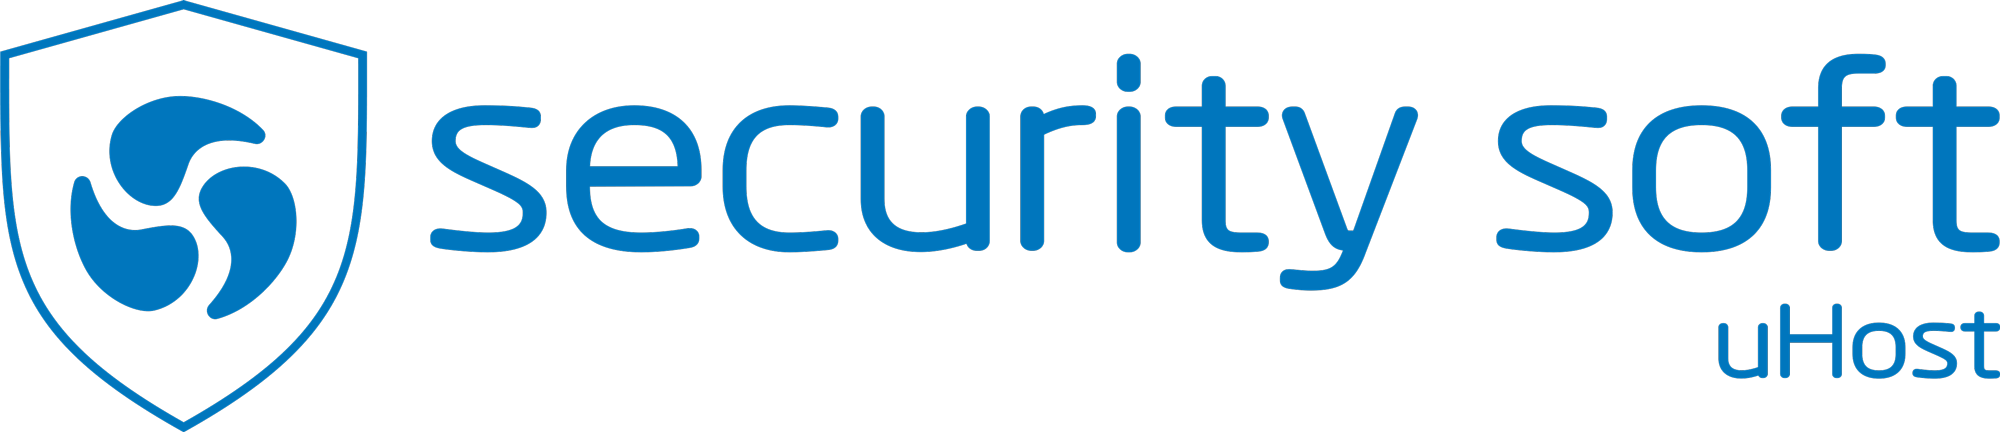 logo security soft uhost